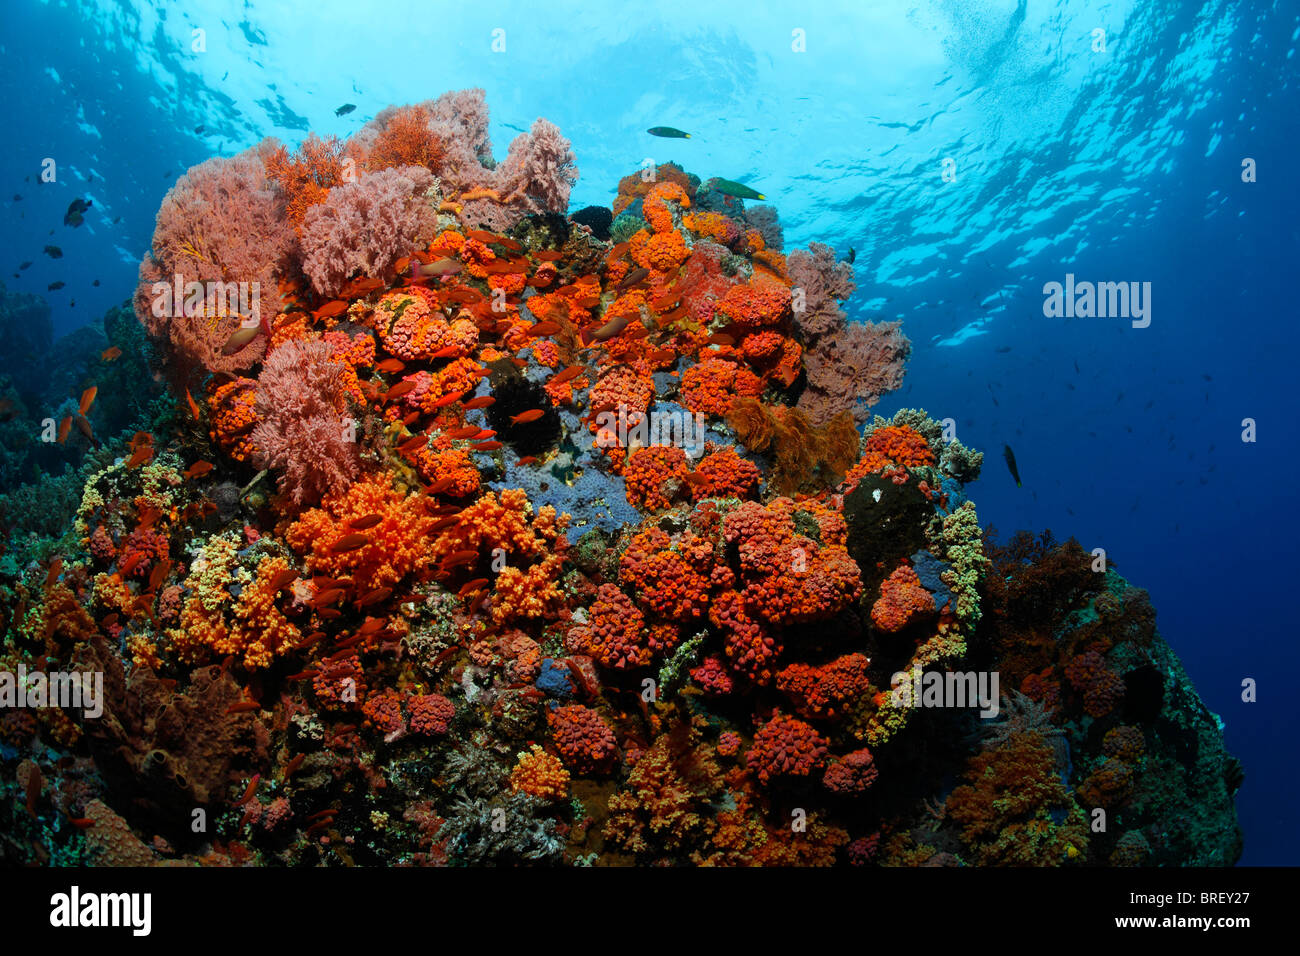 Coral block in a coral reef with a variety of red Sea Fans (Melithaea ochracea), tubastrea corals and Fairy Basslets - Stock Image